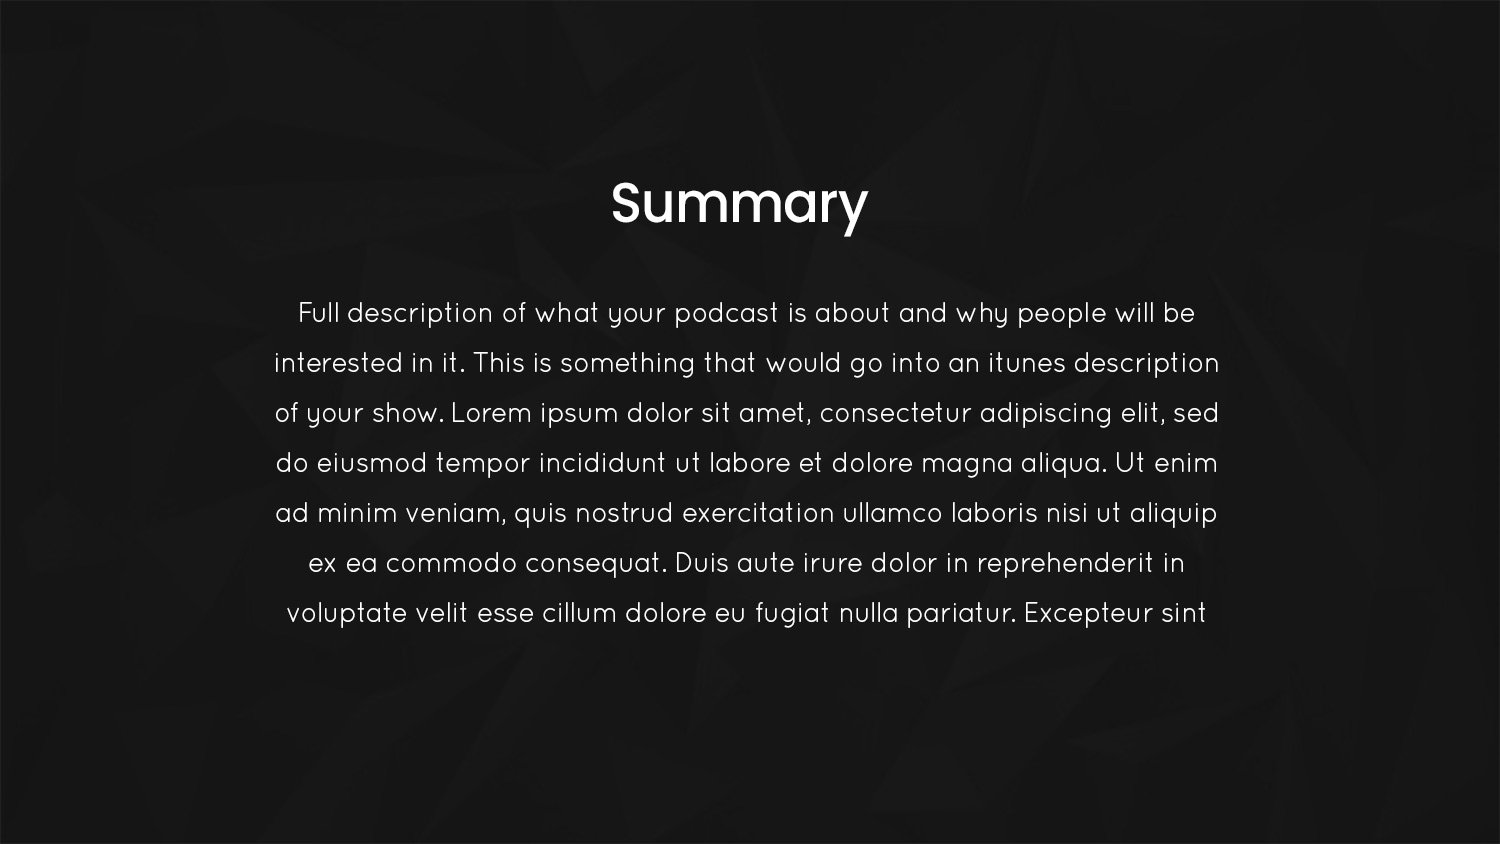 Podcast Pitch deck summary